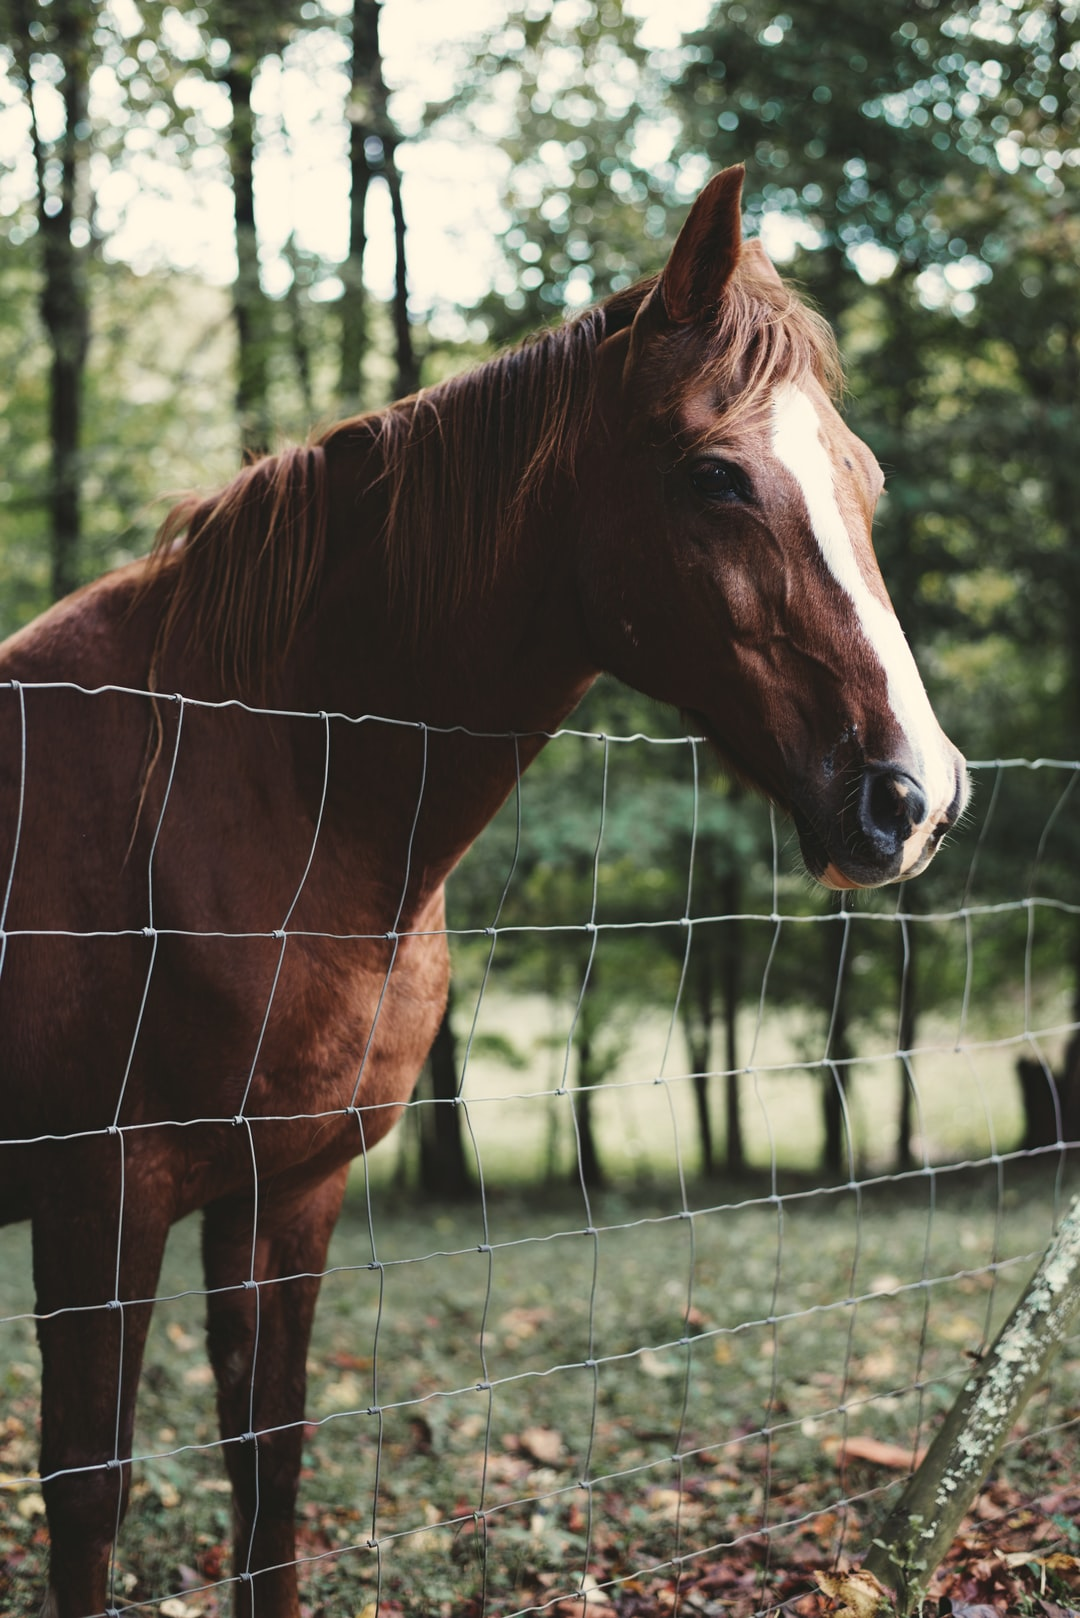 White-striped horse in an enclosure